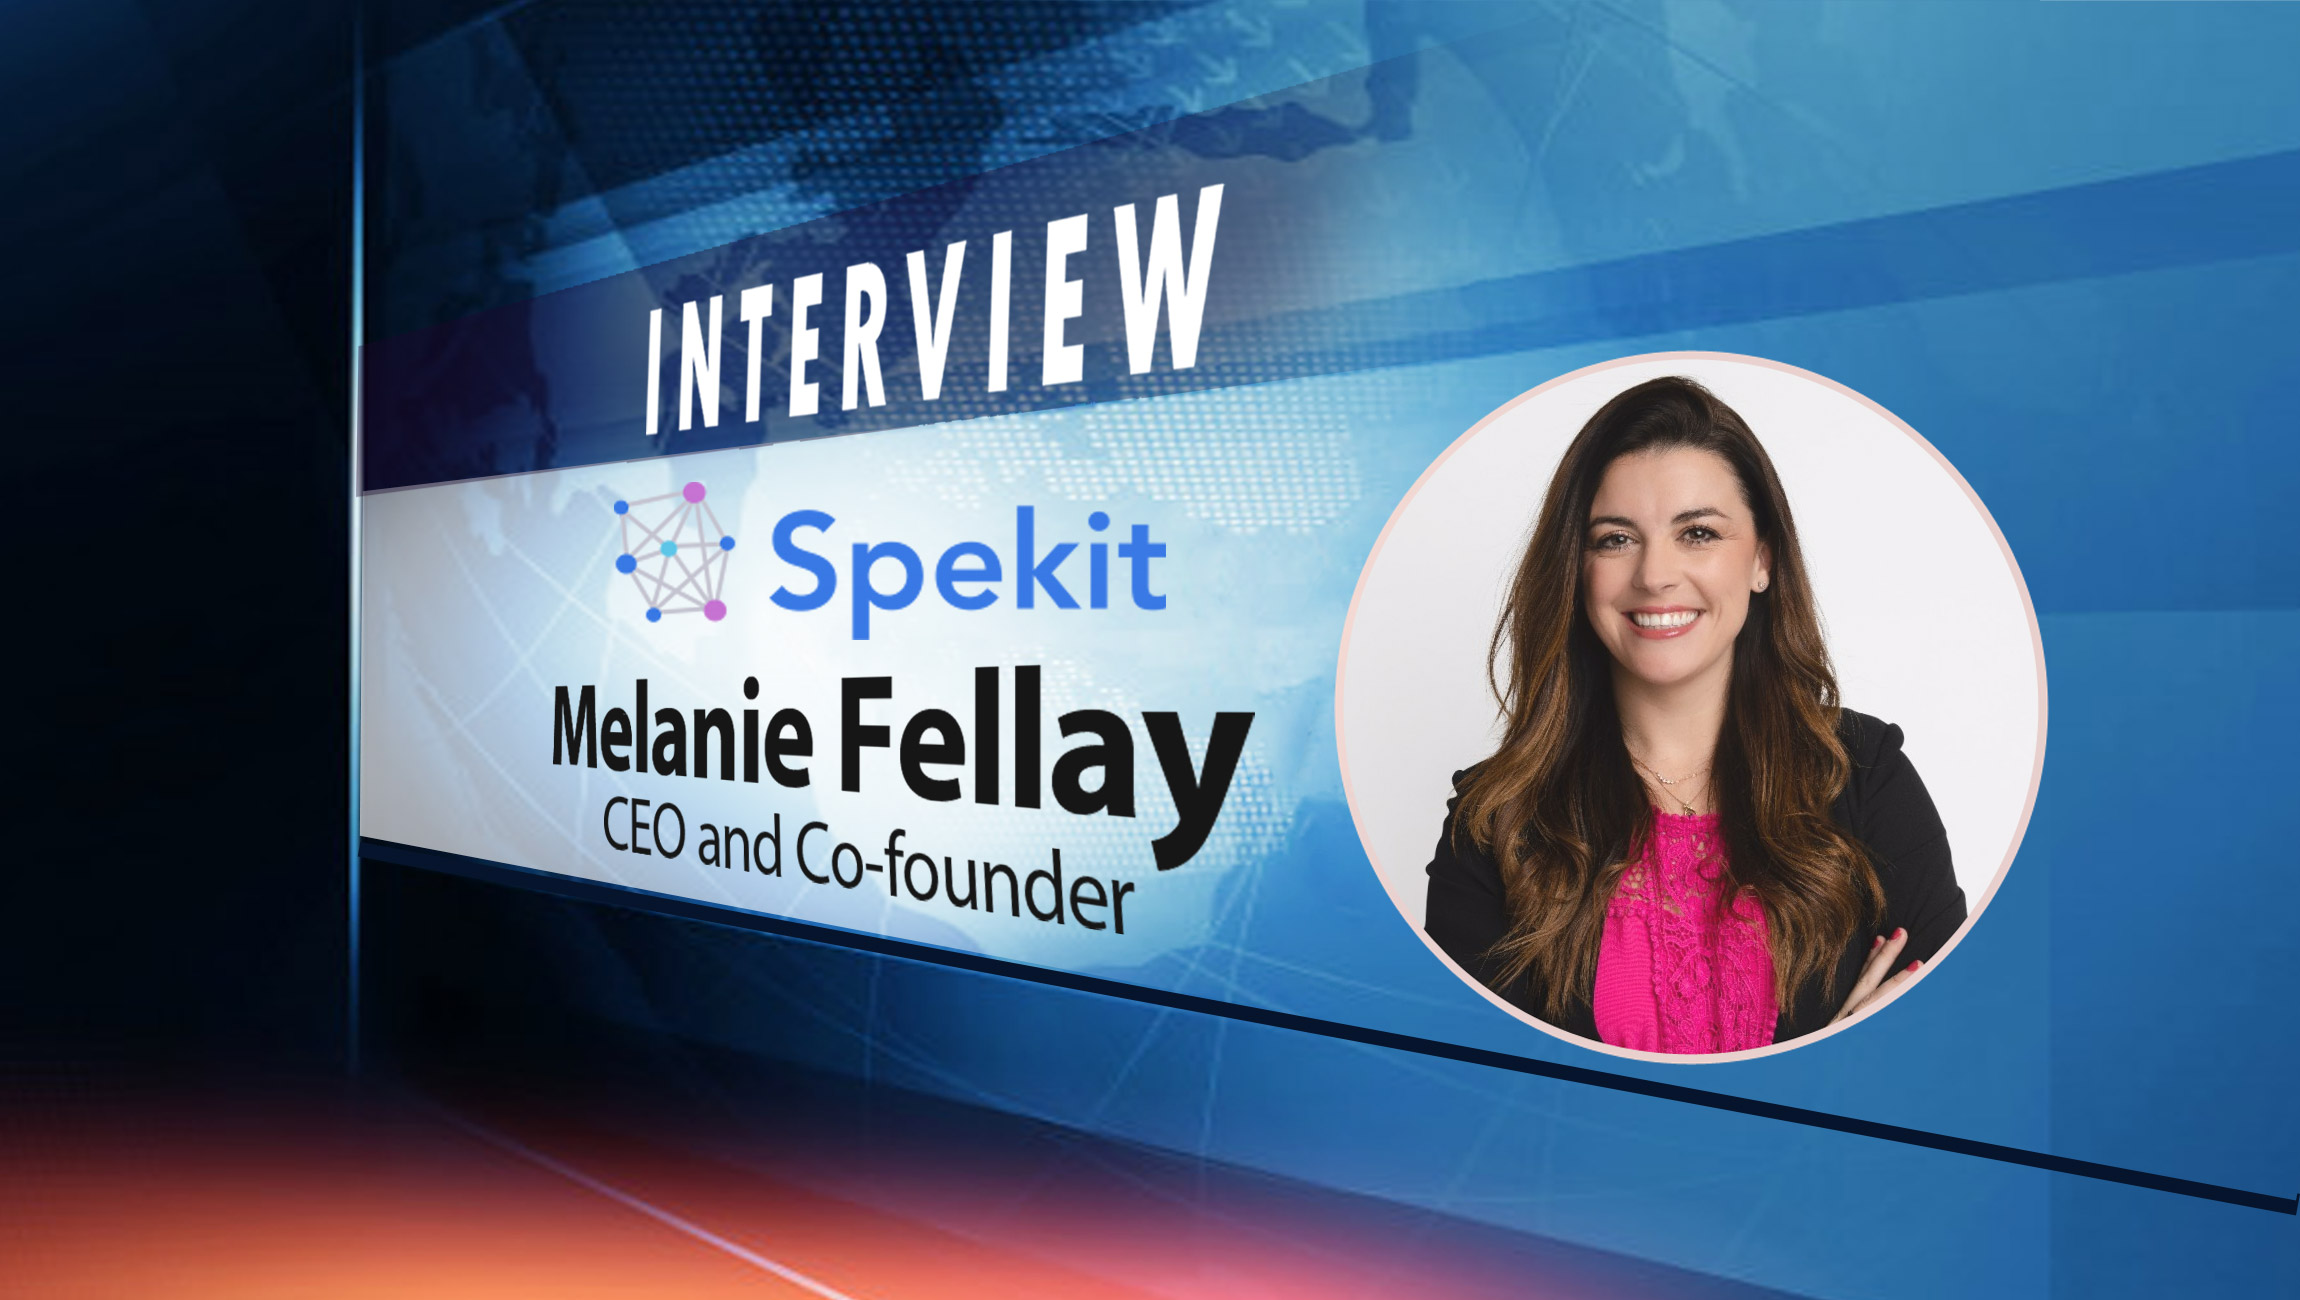 SalesTechStar Interview with Melanie Fellay, CEO and Co-founder at Spekit